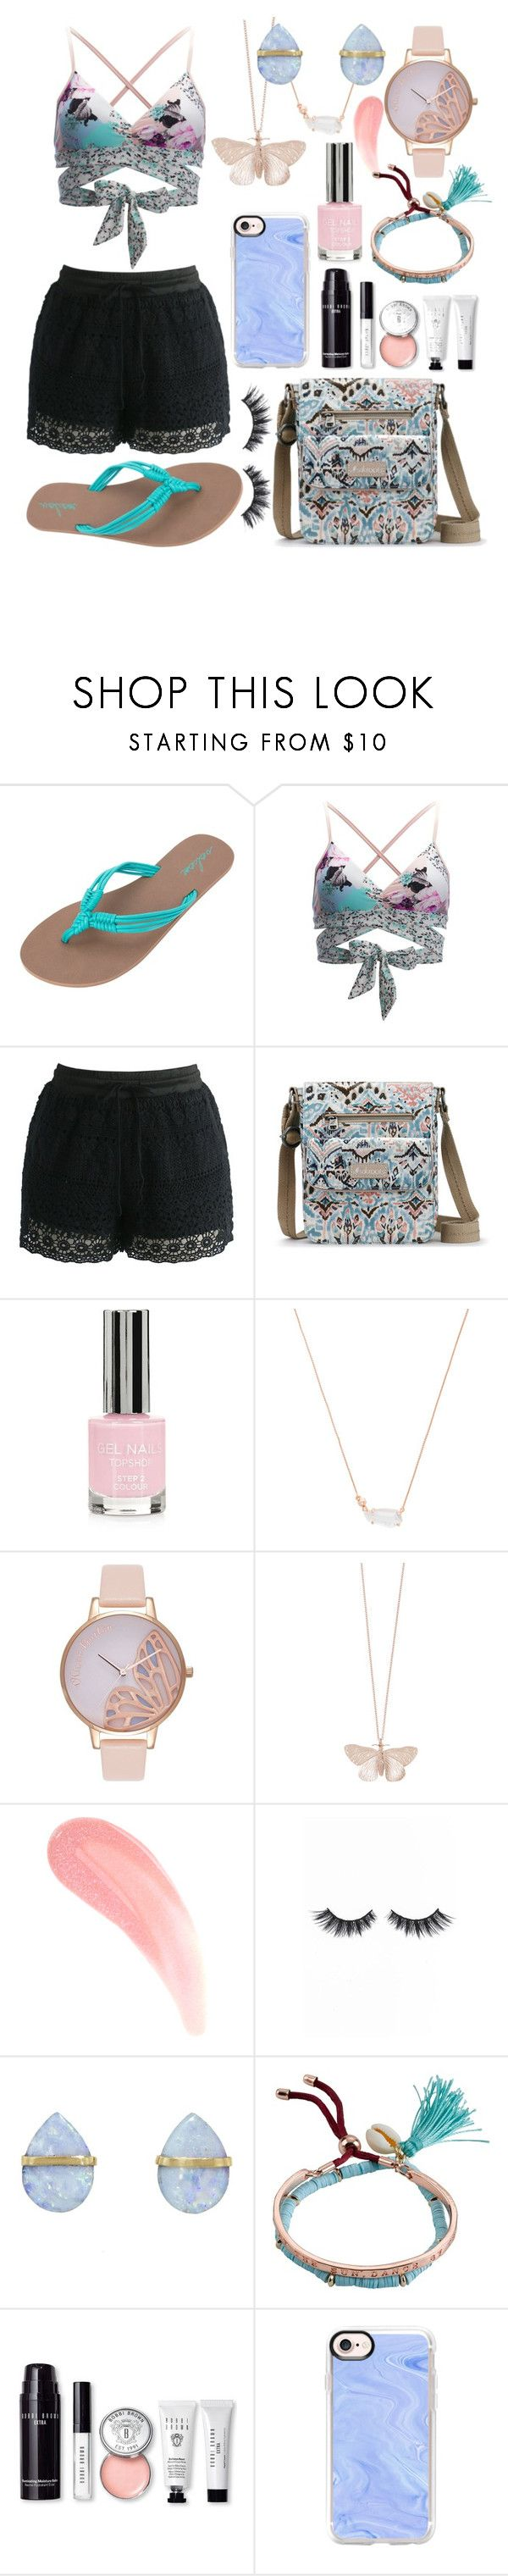 """""""Pastel Afternoon"""" by thegreendino ❤ liked on Polyvore featuring Volcom, Seafolly, Chicwish, Sakroots, Topshop, Kendra Scott, Olivia Burton, Alex Monroe, Violet Voss and Melissa Joy Manning"""